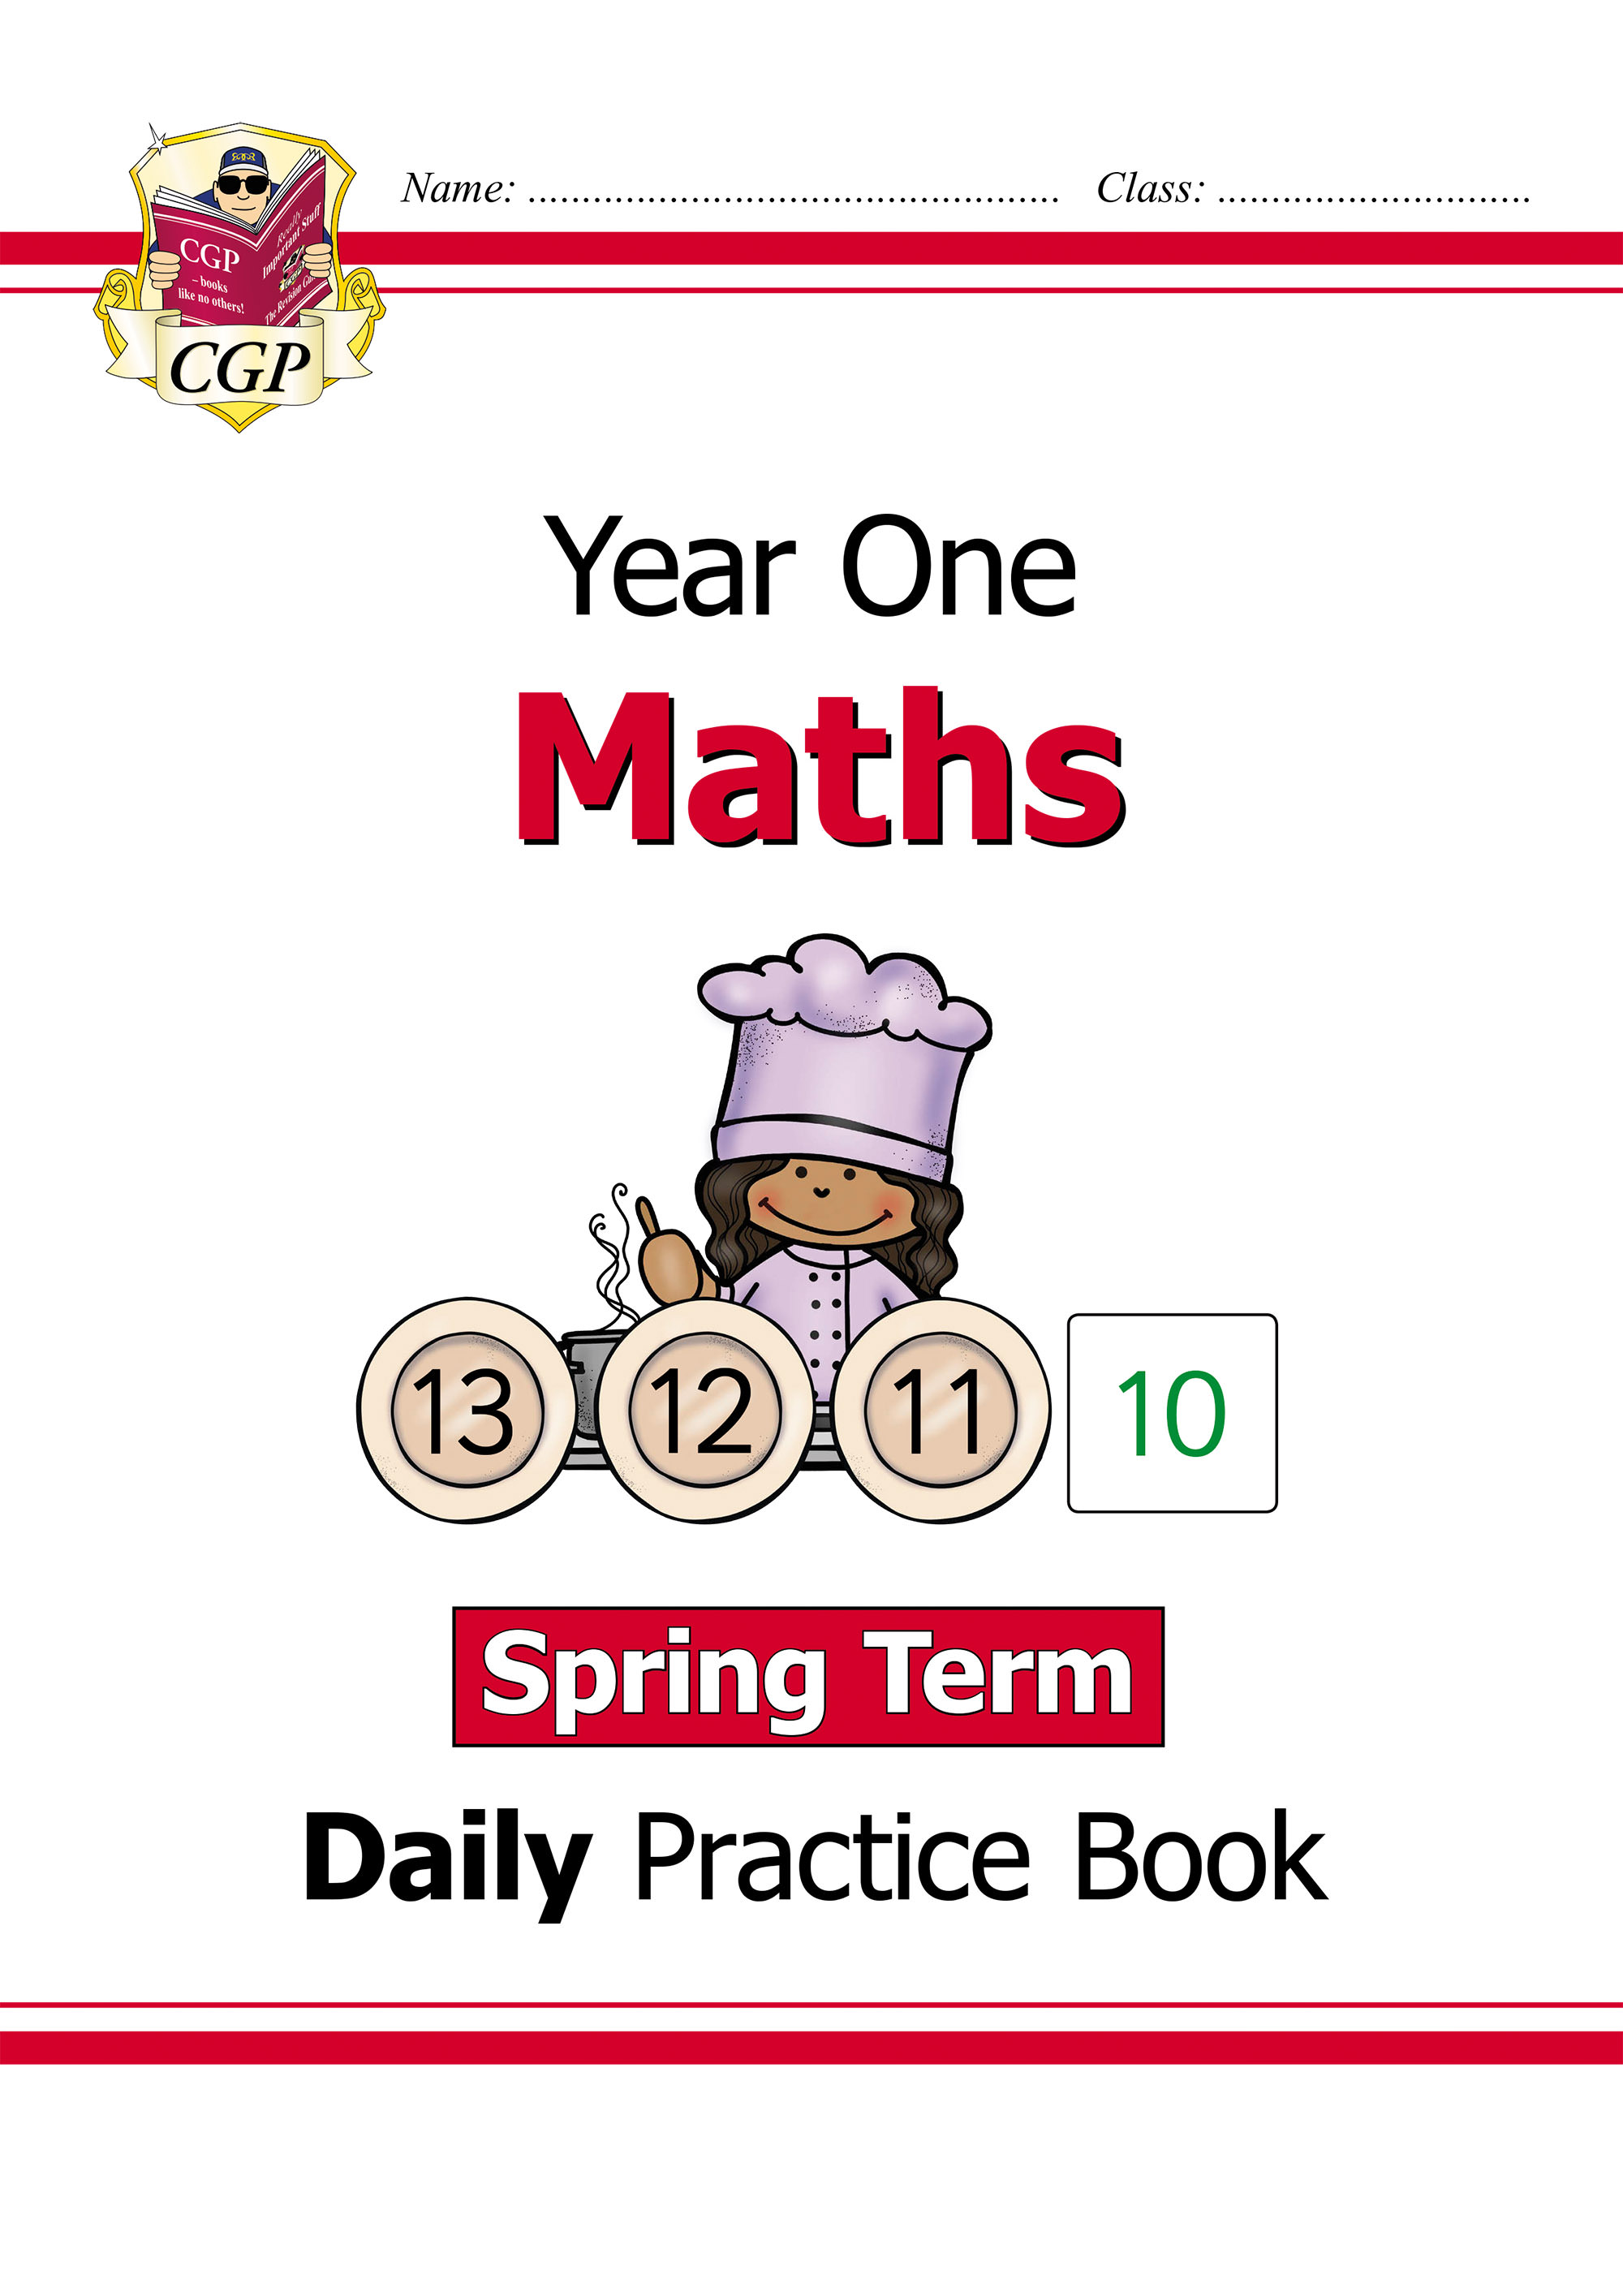 M1WSP11D - New KS1 Maths Daily Practice Book: Year 1 - Spring Term Online Edition